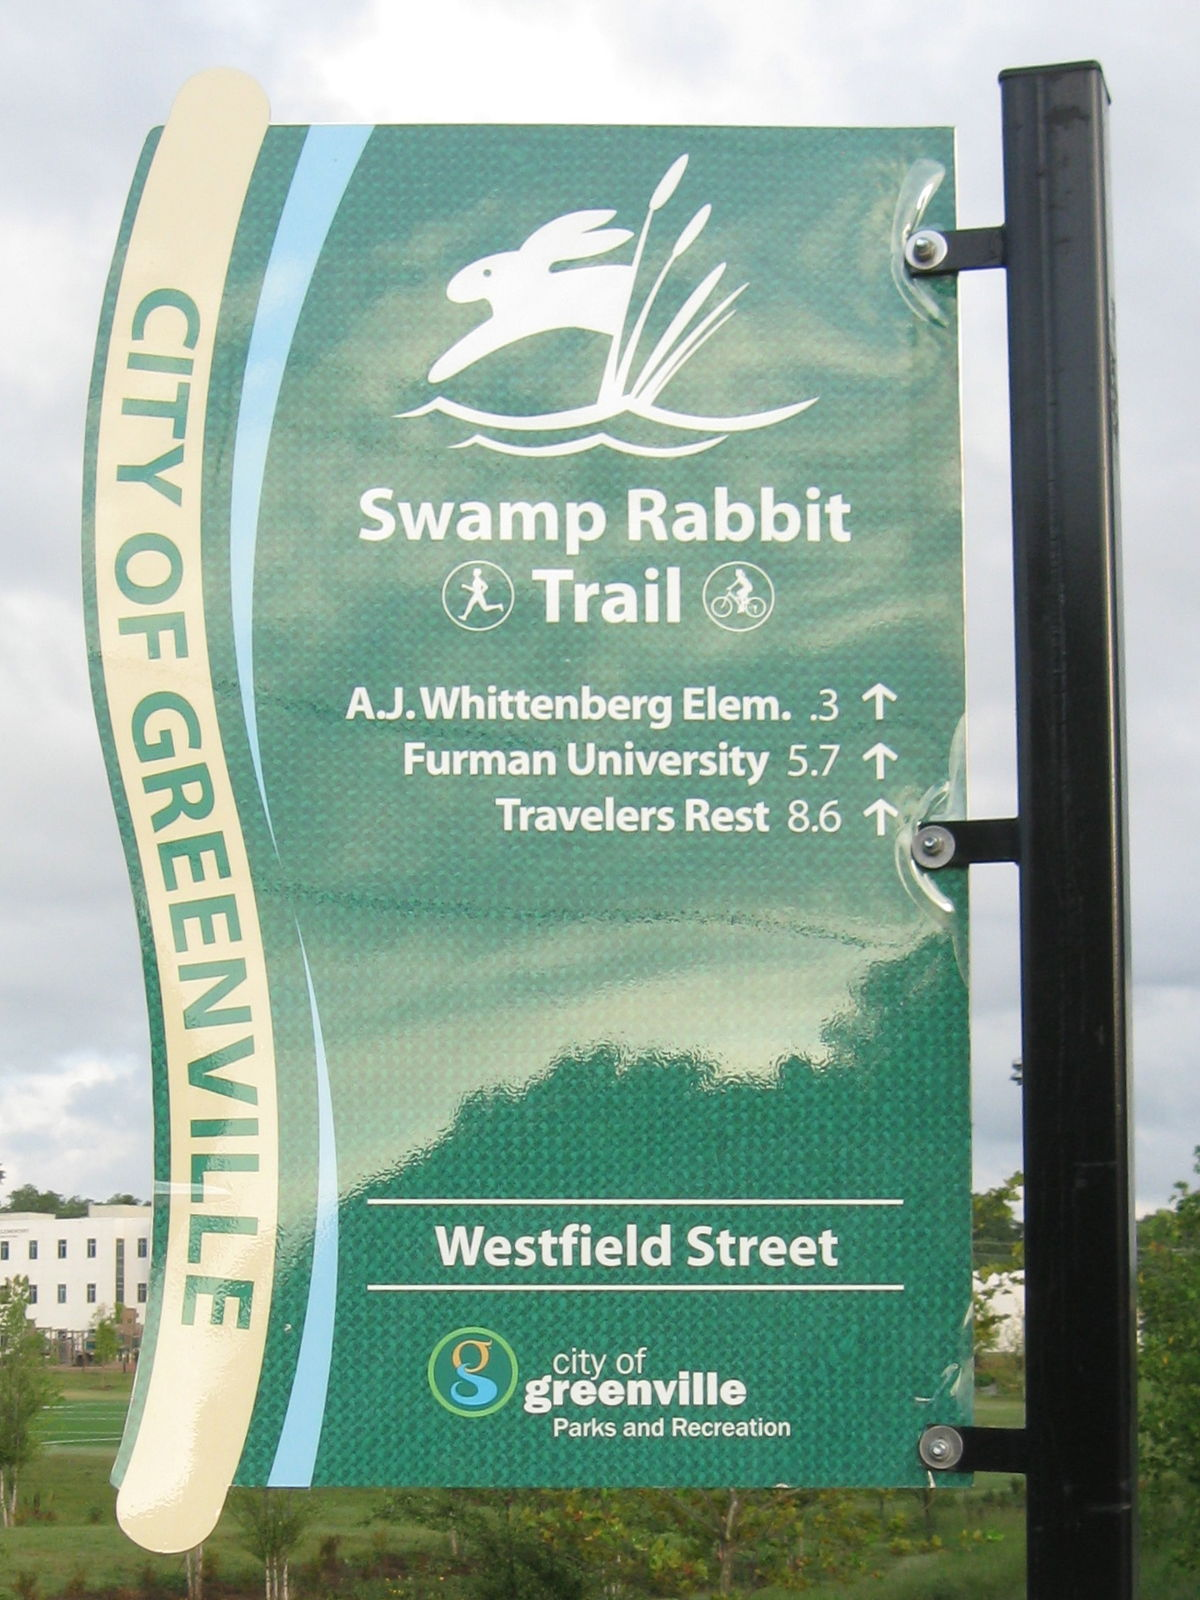 Swamp Rabbit Trail - Wikipedia